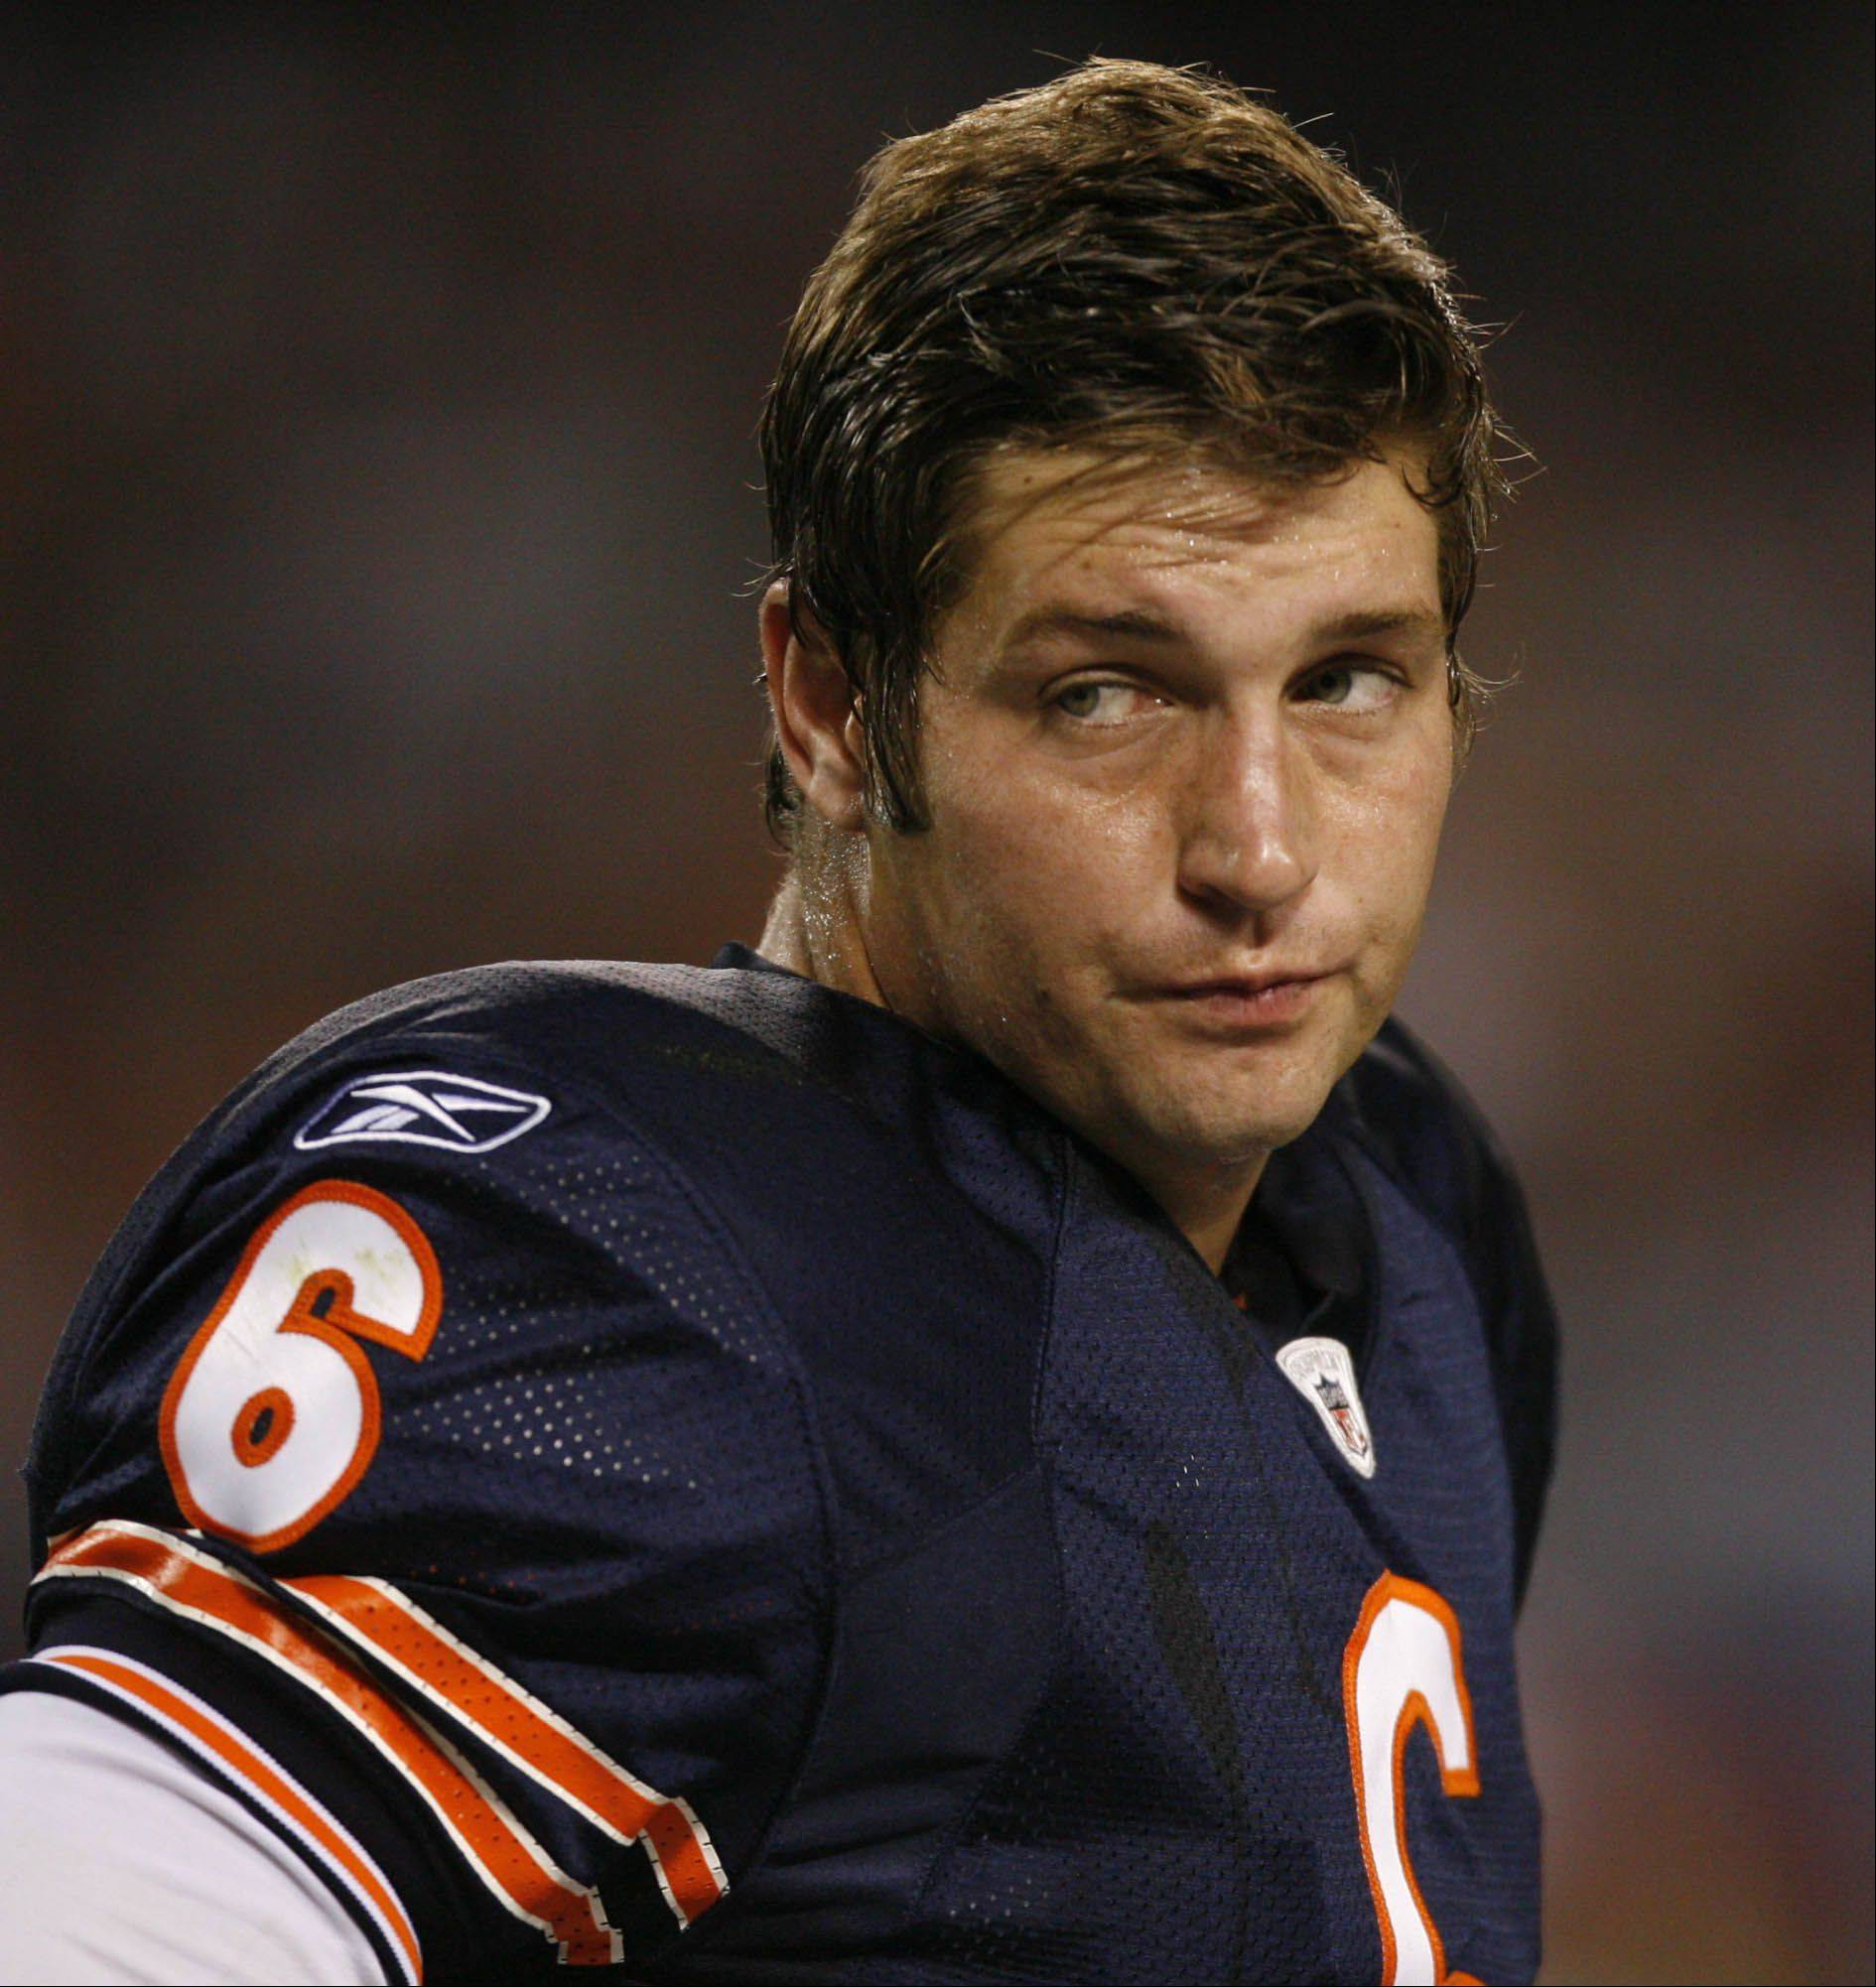 GEORGE LECLAIRE/gleclaire@dailyherald.com ¬ Chicago Bears' Jay Cutler on the sideline after throwing an interception against Arizona Cardinals' on Saturday, August 28th at Soldier Field in Chicago.